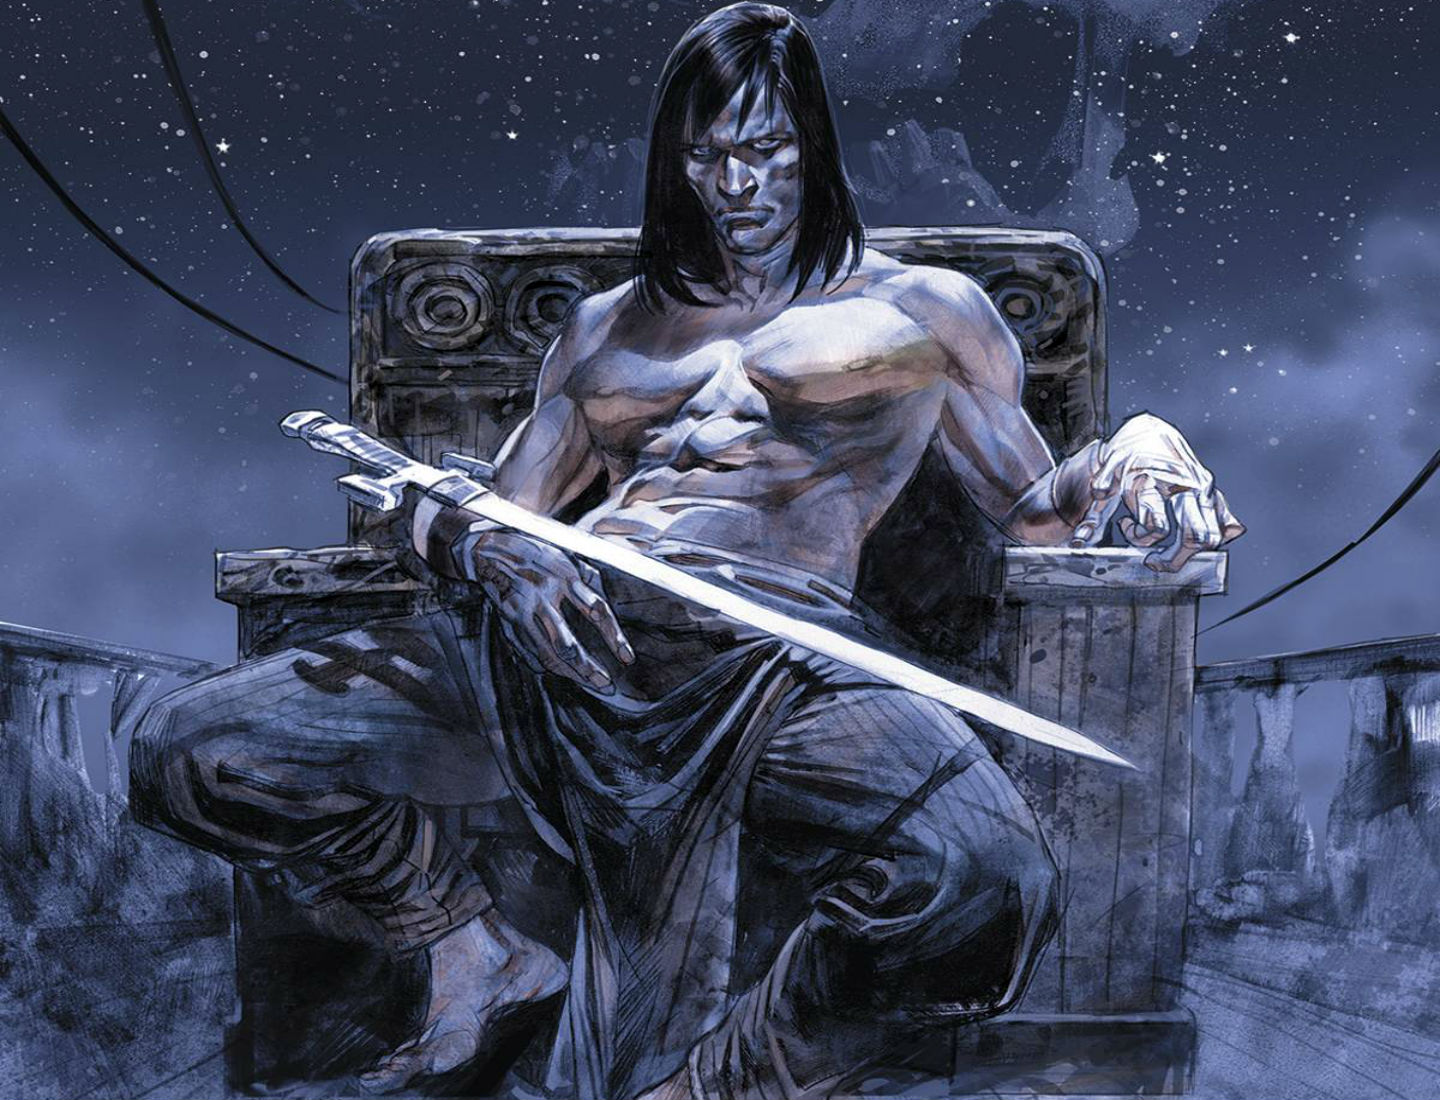 CONAN THE BARBARIAN fs wallpaper | 1440x1100 | 140178 ...